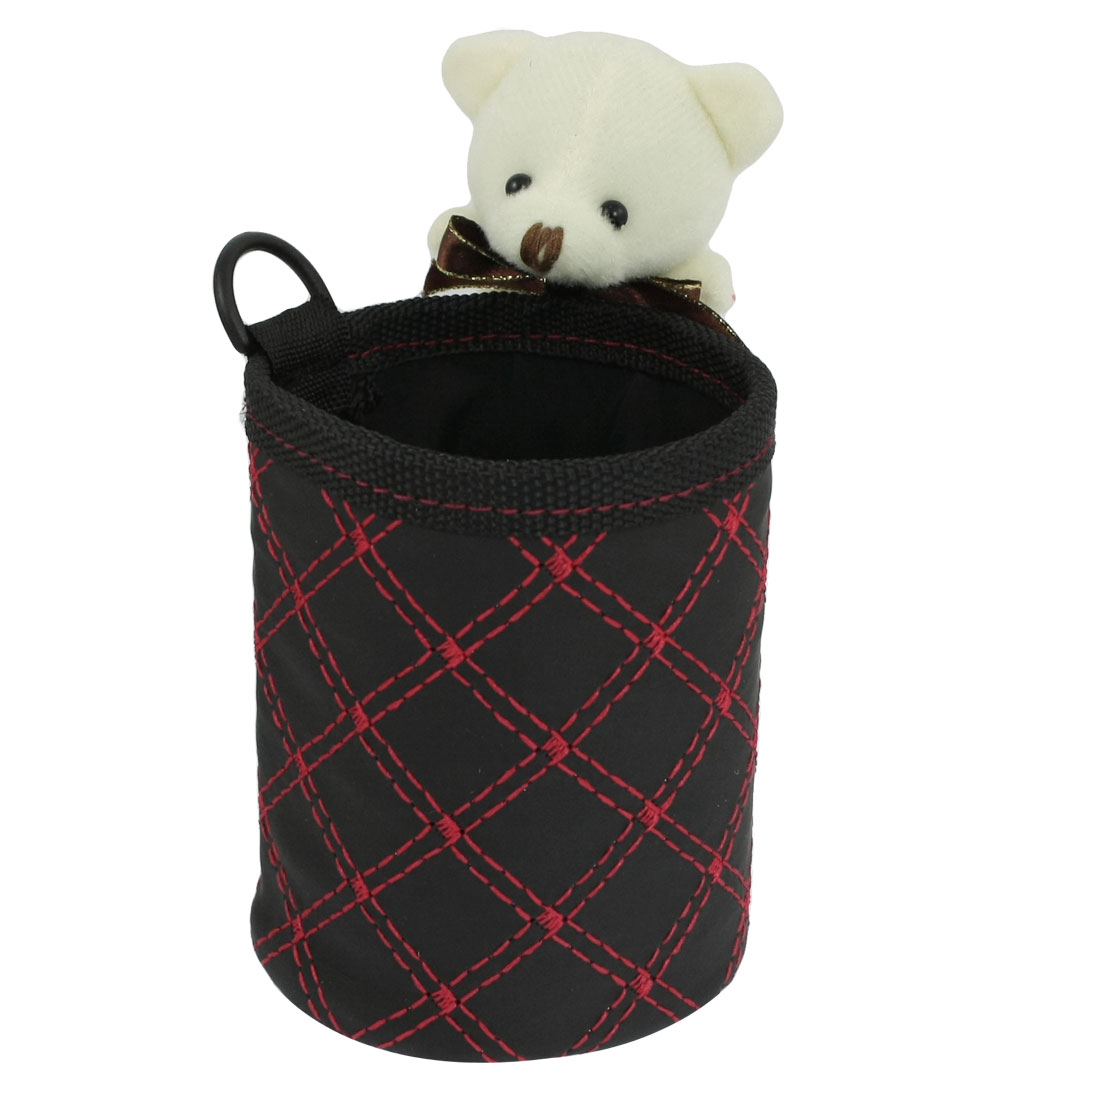 Beige Cartoon Mouse Detail Black Red Cylinder Storage Bag Holder for Car